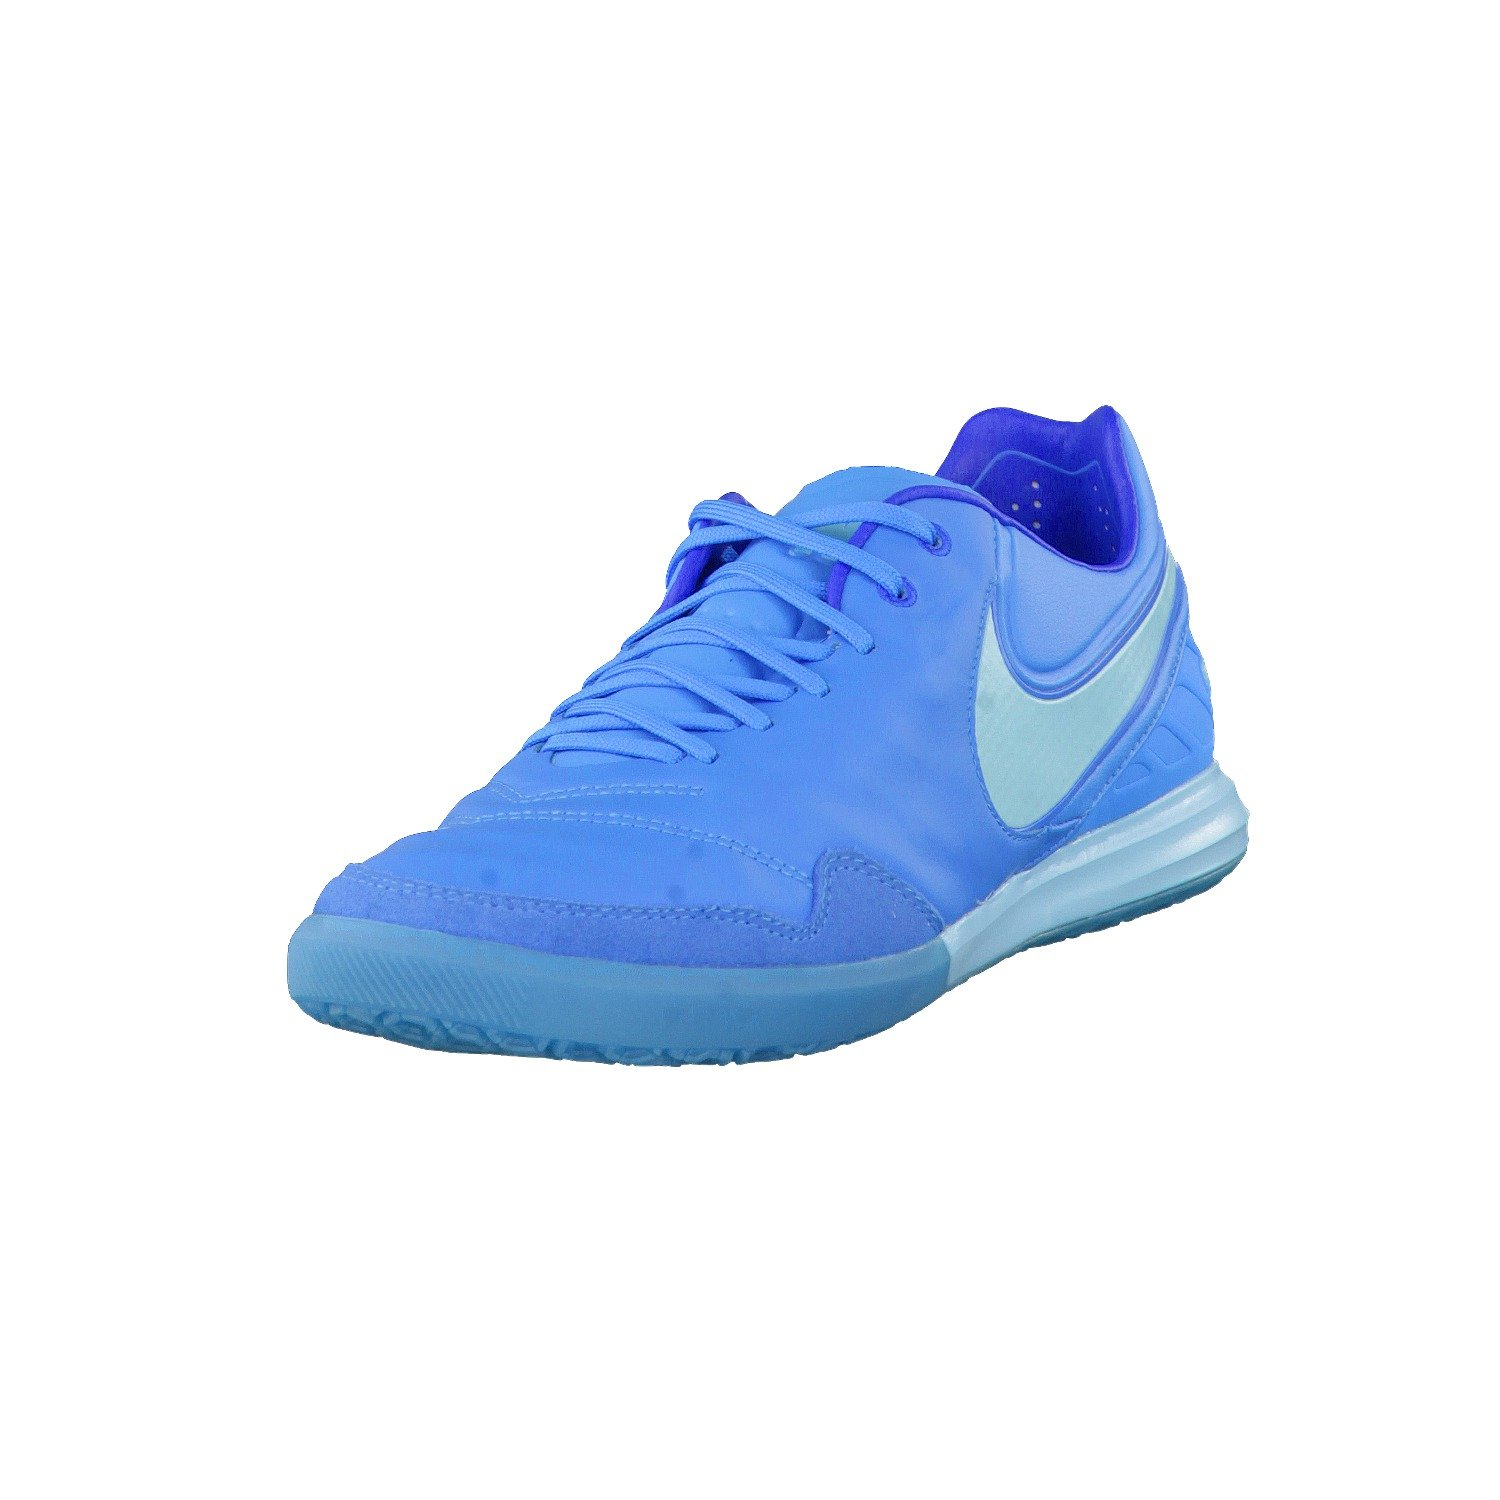 new style 99de2 5766f Nike Mens TiempoX Proximo IC Indoor Soccer Shoe (Blue Glow) chic